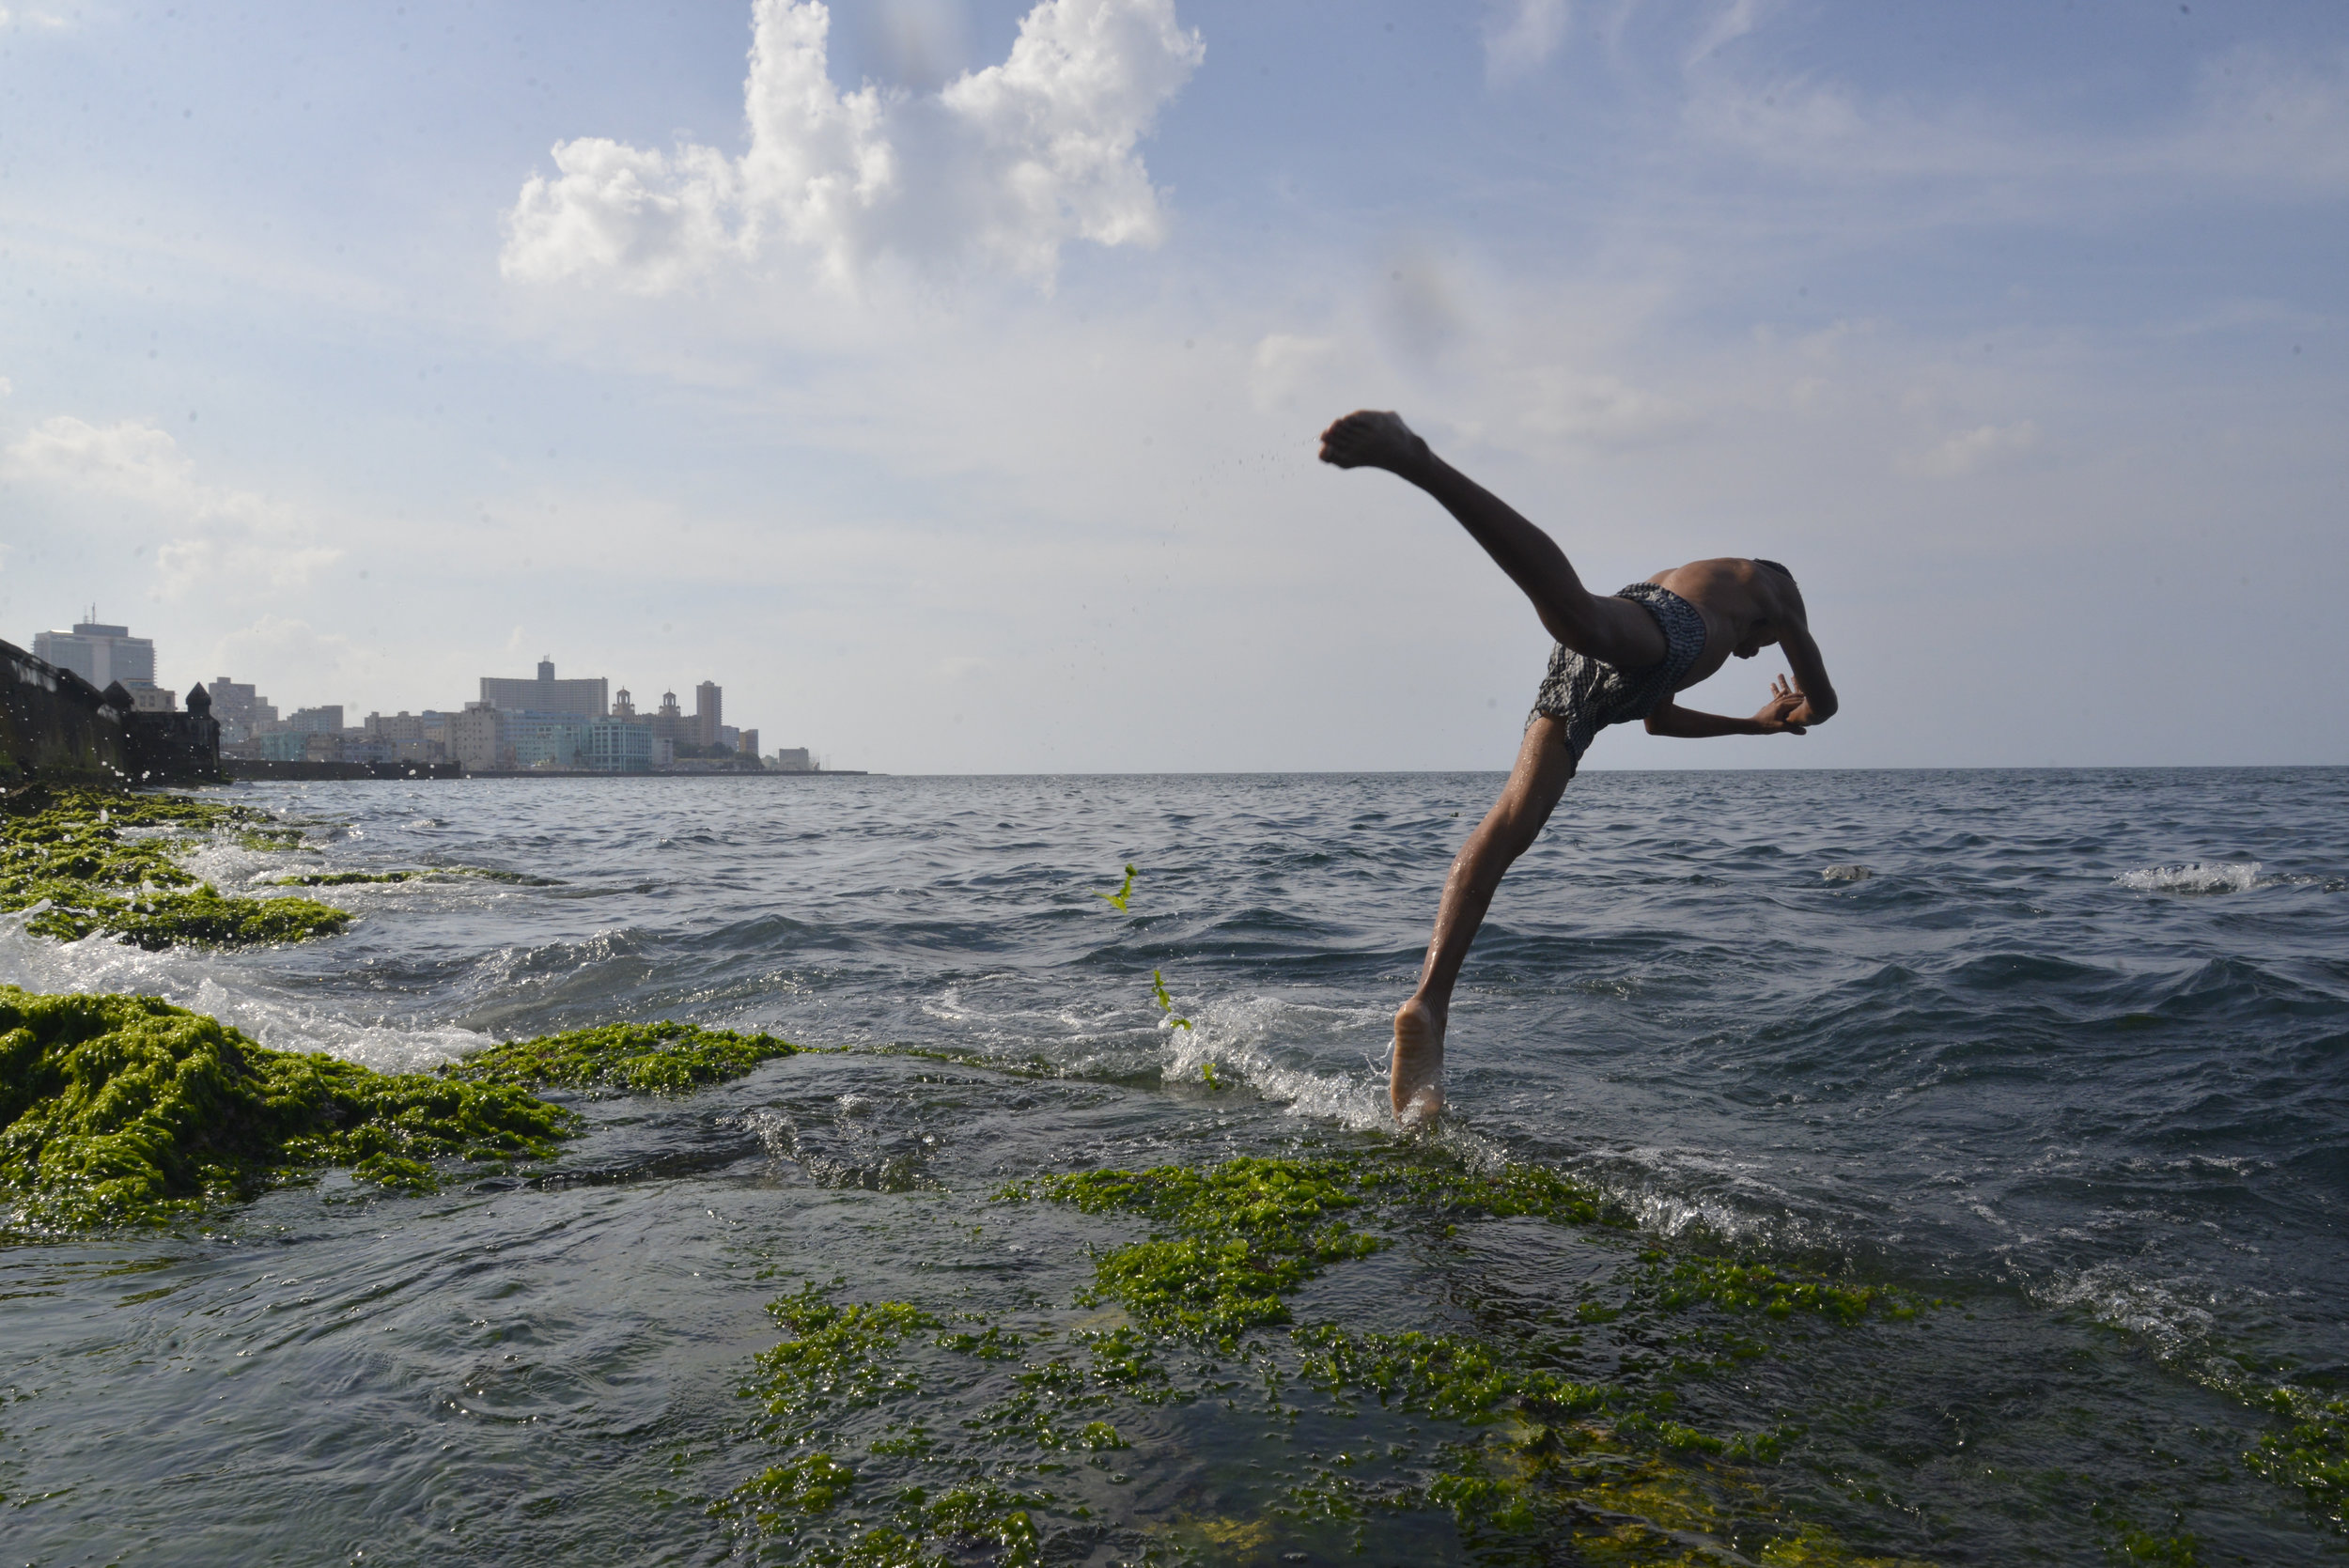 Photojournalism: A Cuban Family